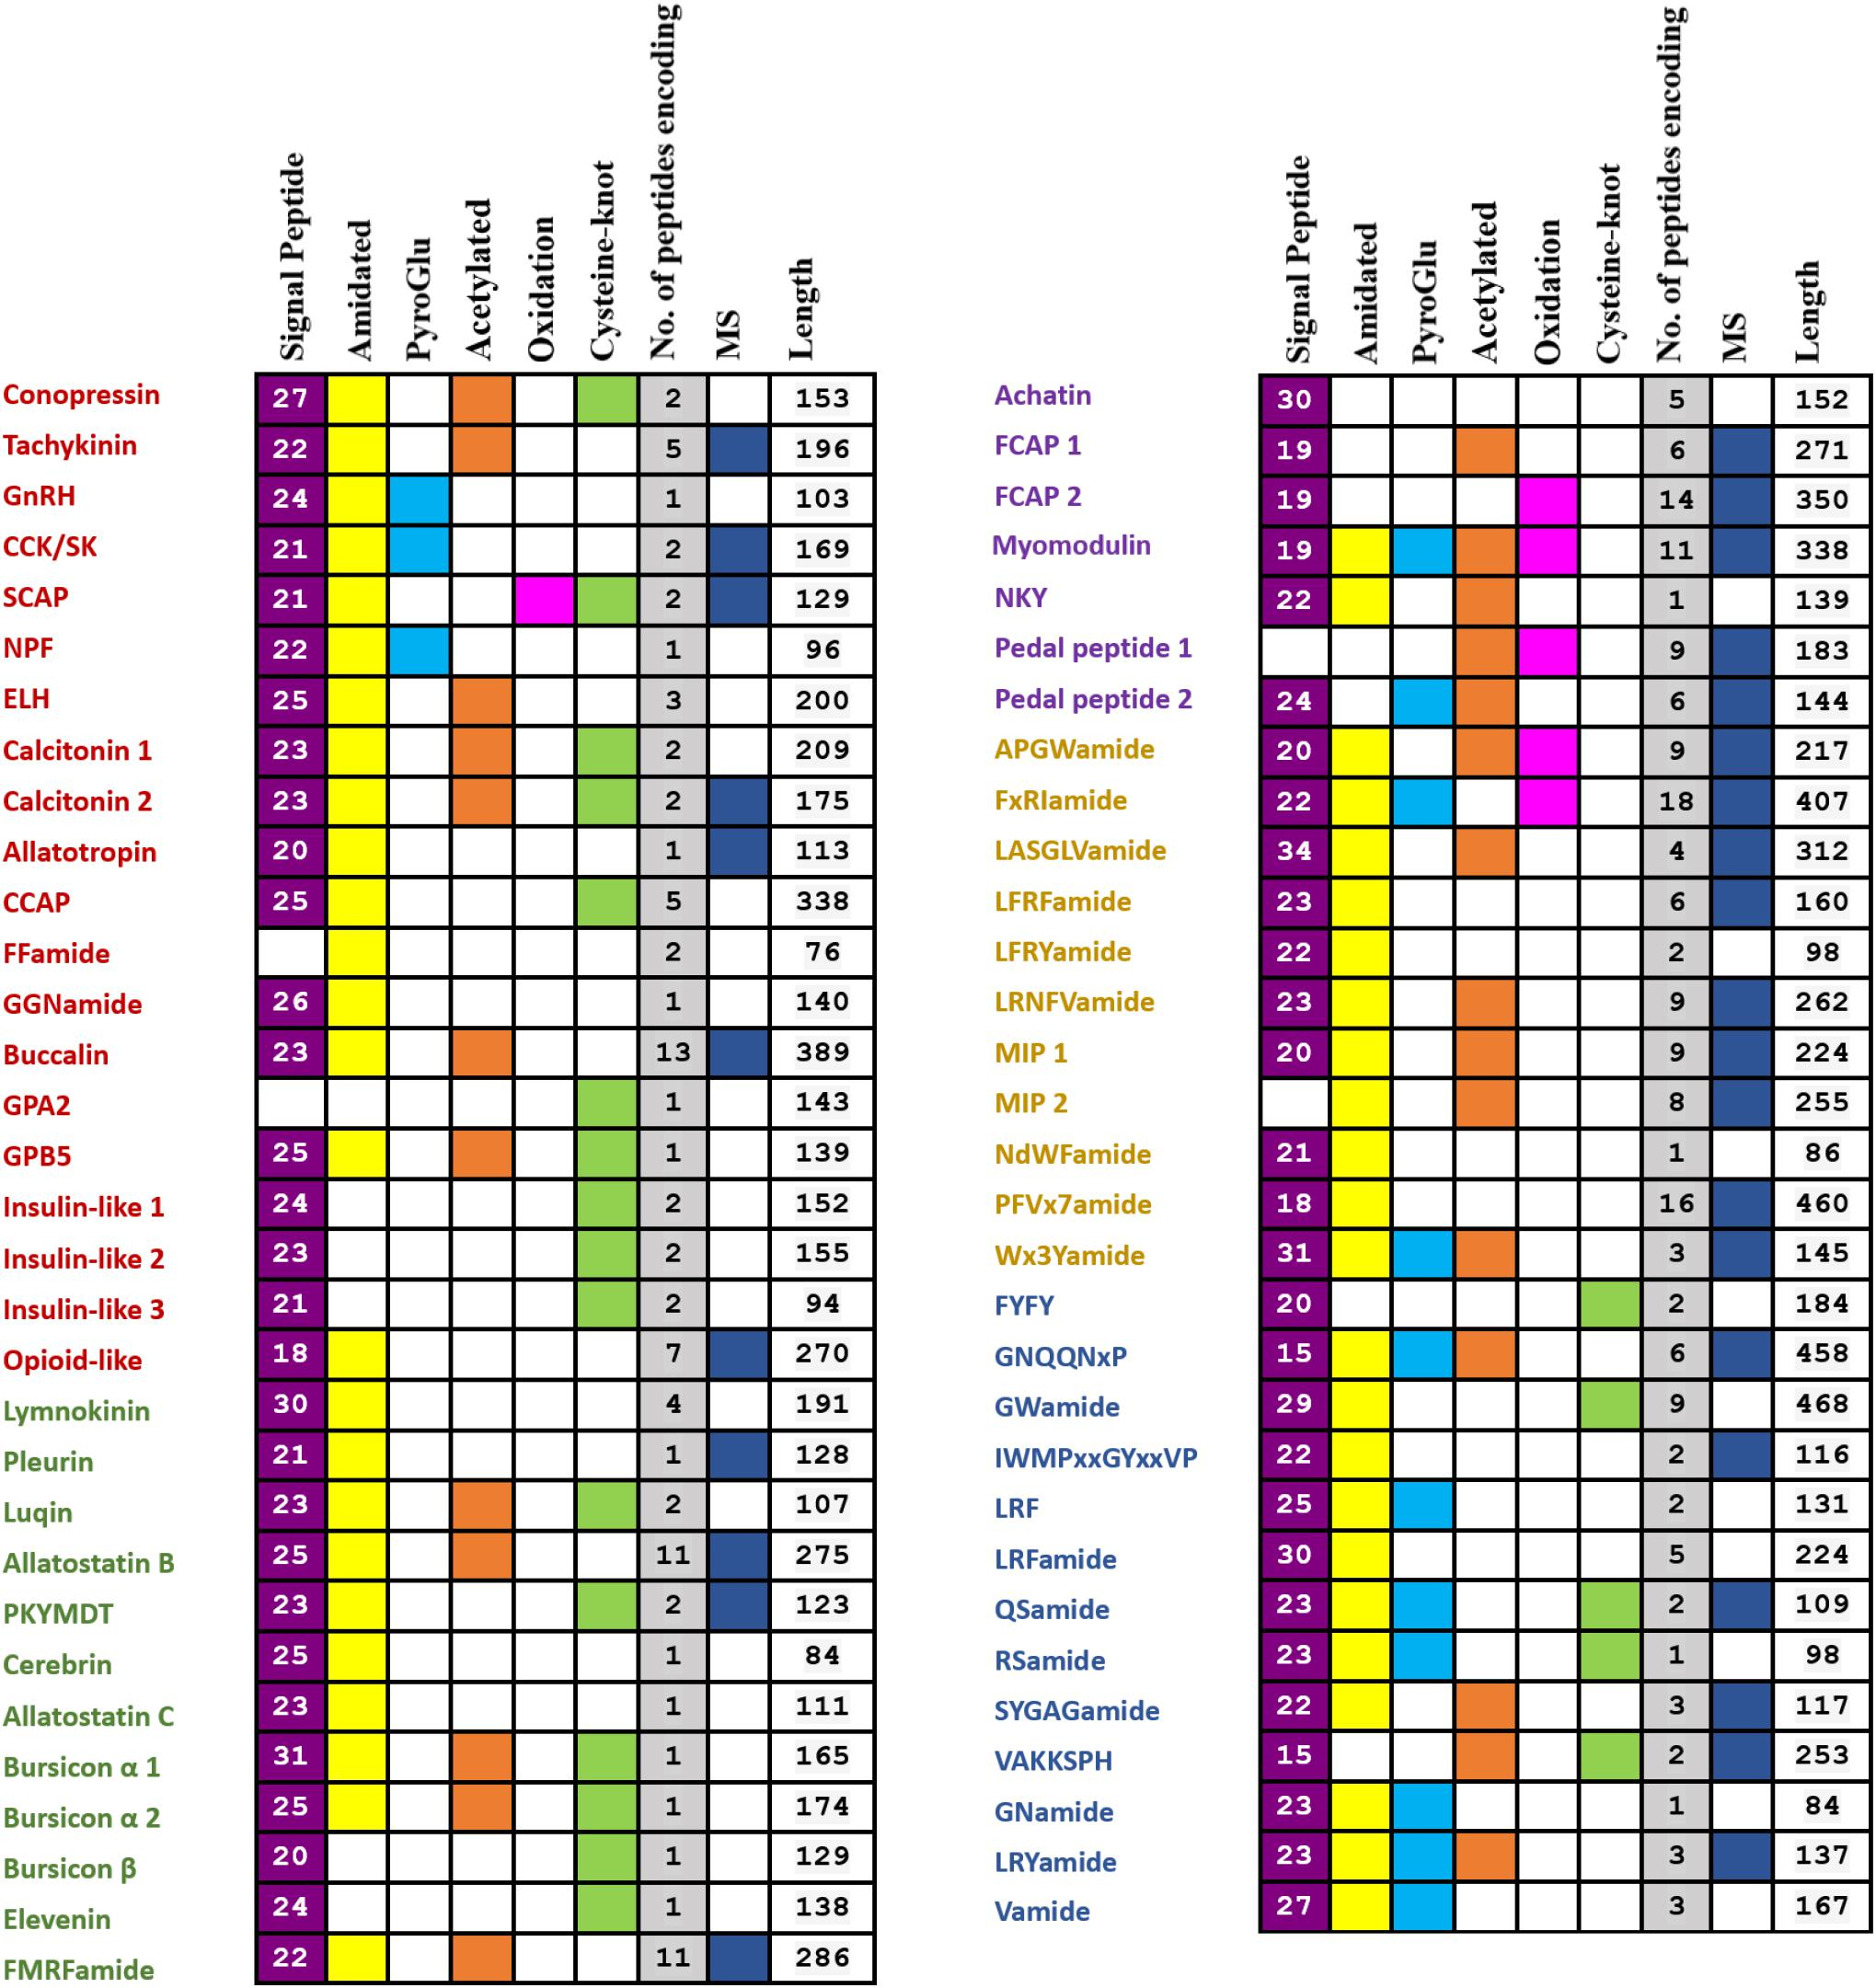 The Importance Of Identified Neurons In Gastropod Molluscs To >> Frontiers Identification And Characterization Of Neuropeptides By